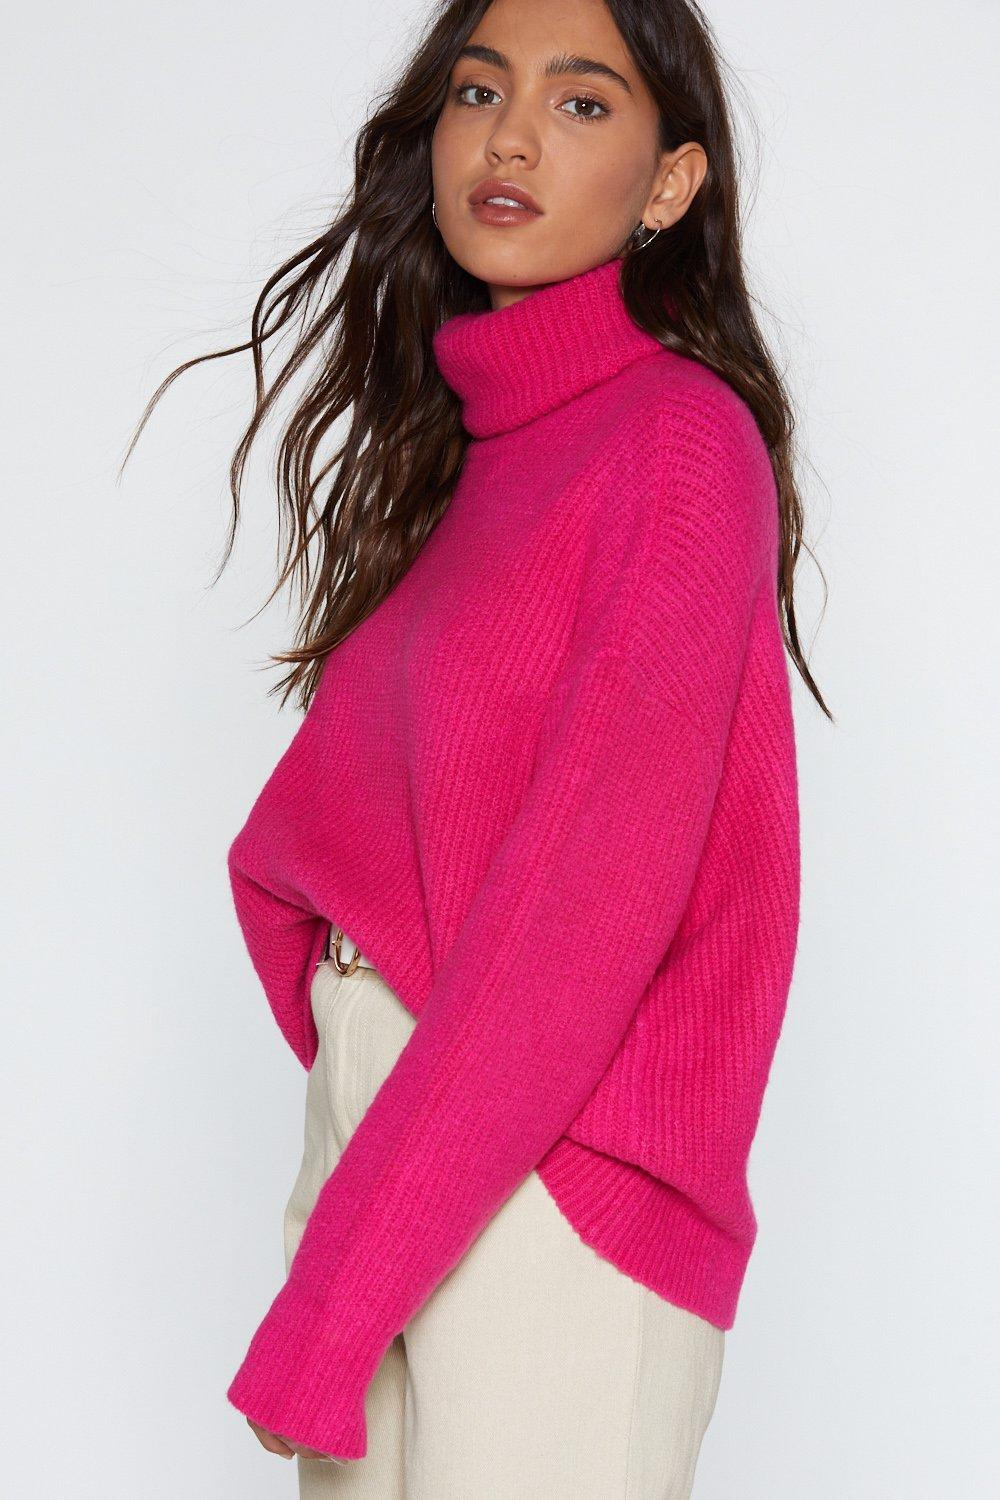 84a3231bdc Womens Pink Don t Mention Knit Turtleneck Sweater